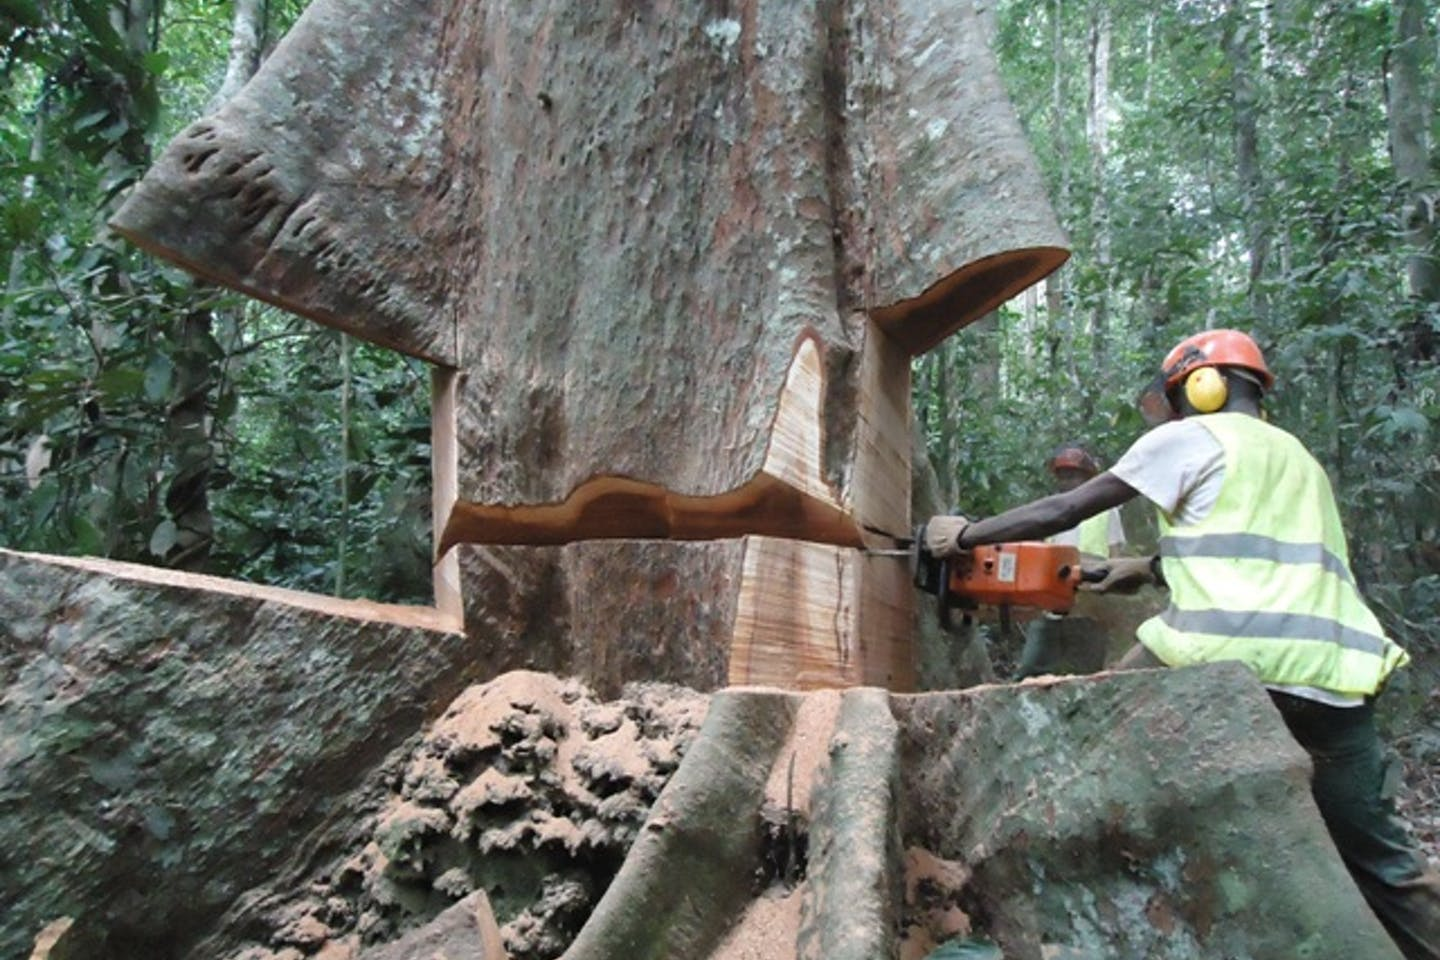 A man cuts timber with power saw.